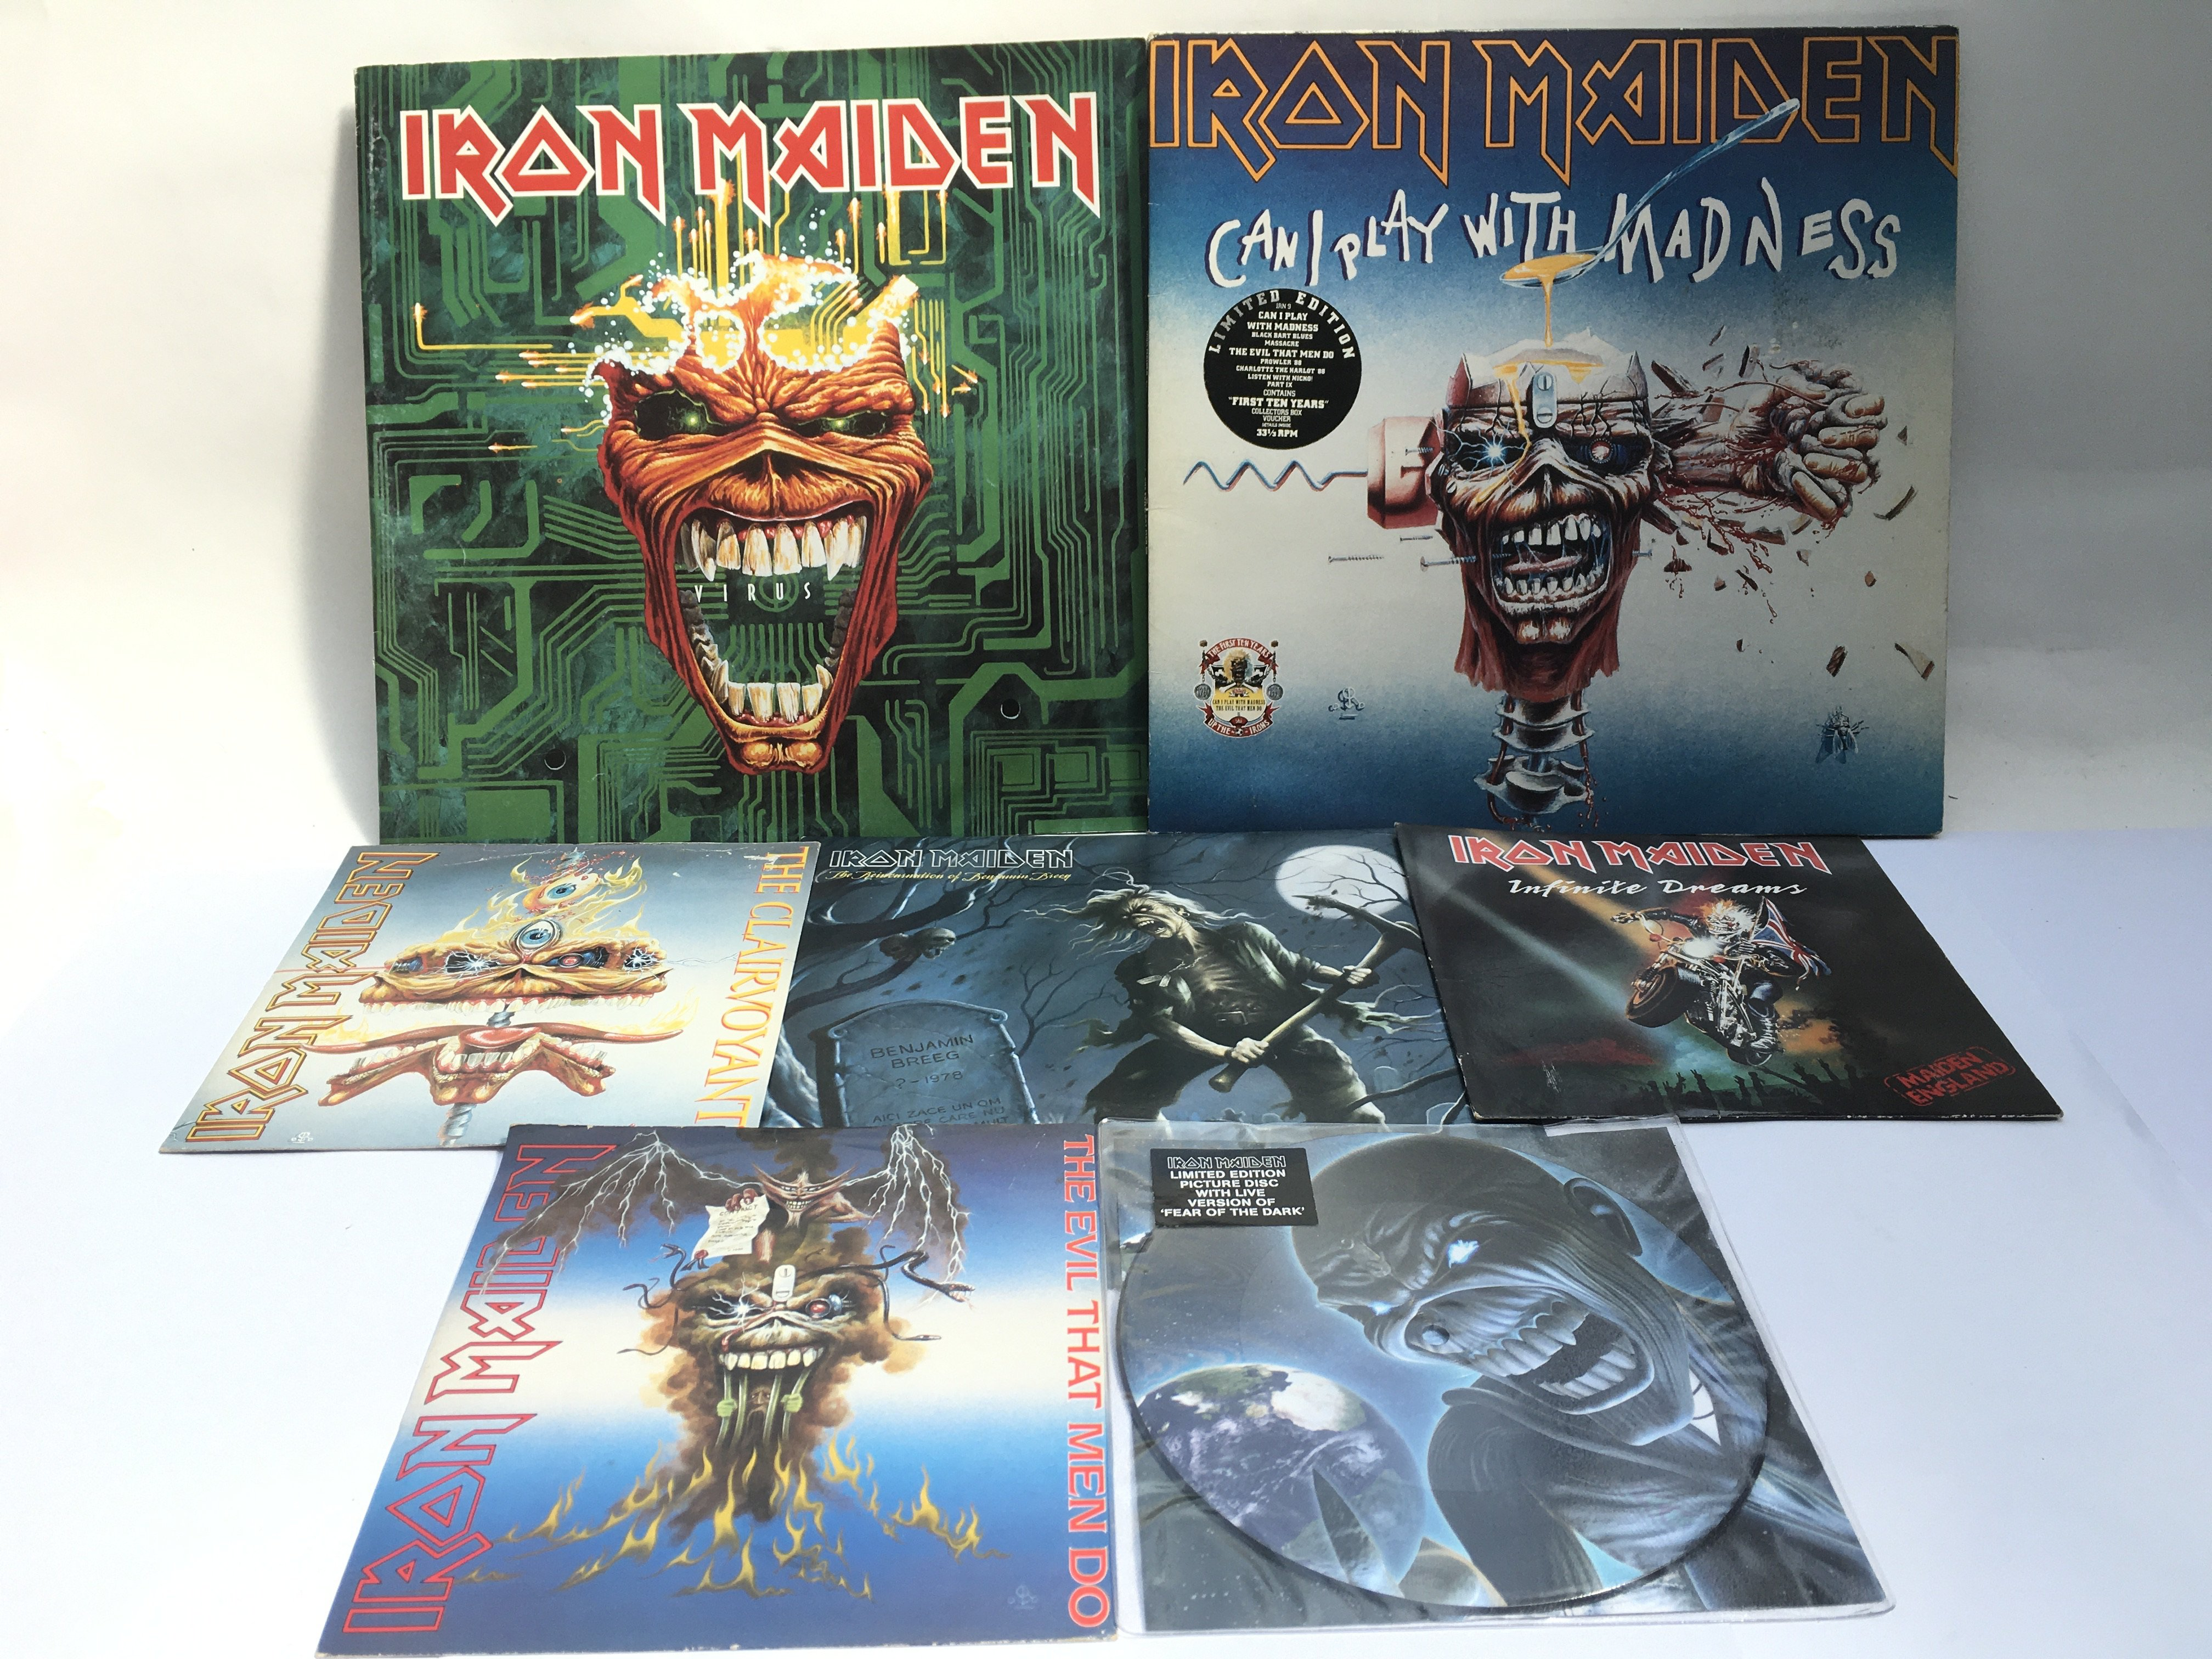 An Iron Maiden collection of LPs, picture discs, 7